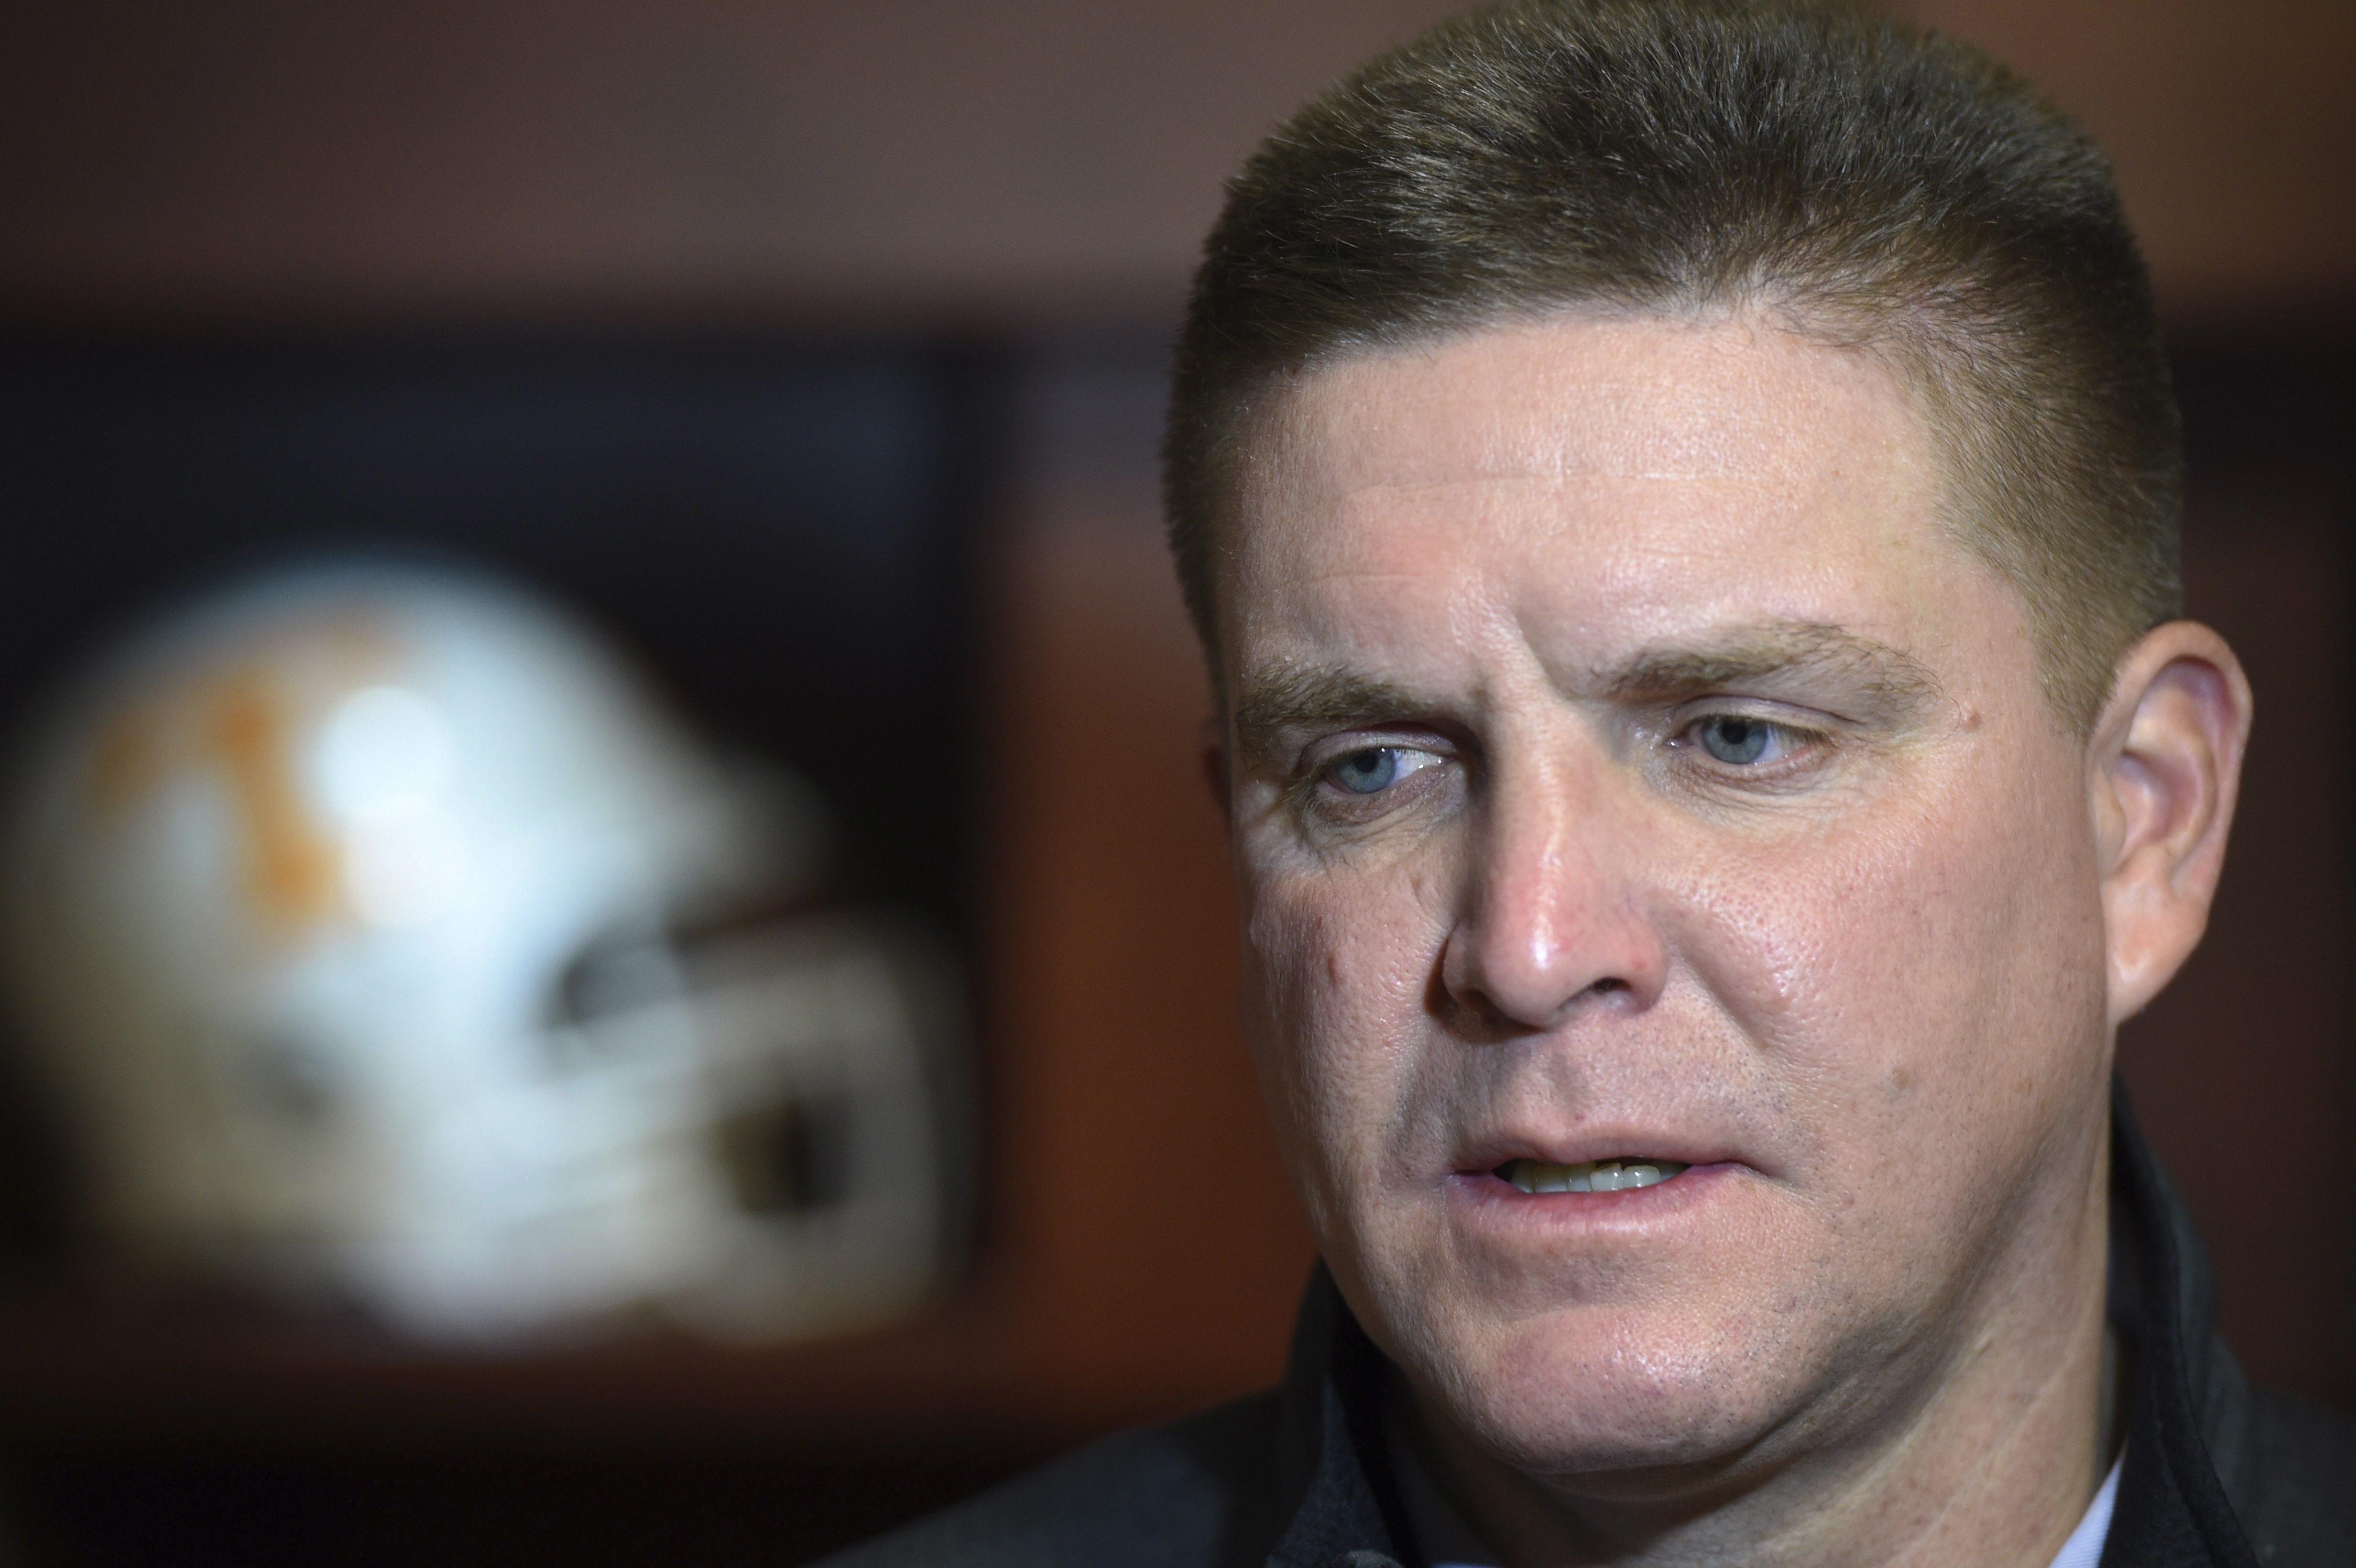 FILE - In this Jan. 12, 2016, file photo, Tennessee's defensive coordinator, Bob Shoop, answers questions during a news conference in Knoxville, Tenn. Tennessee (8-4) hopes the end of the regular season helps the defense recharge heading into the Dec. 30